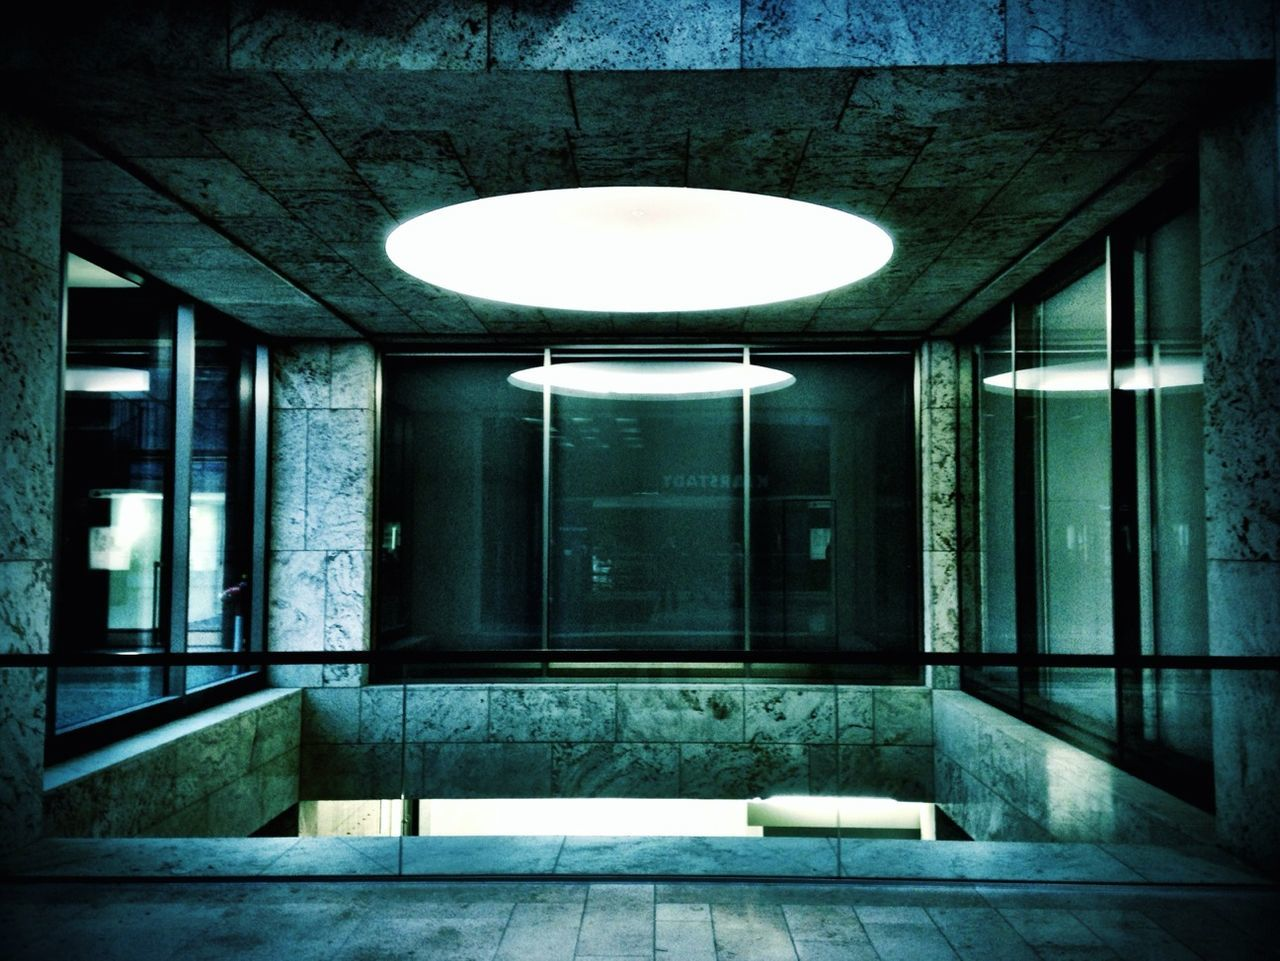 indoors, architecture, no people, built structure, illuminated, day